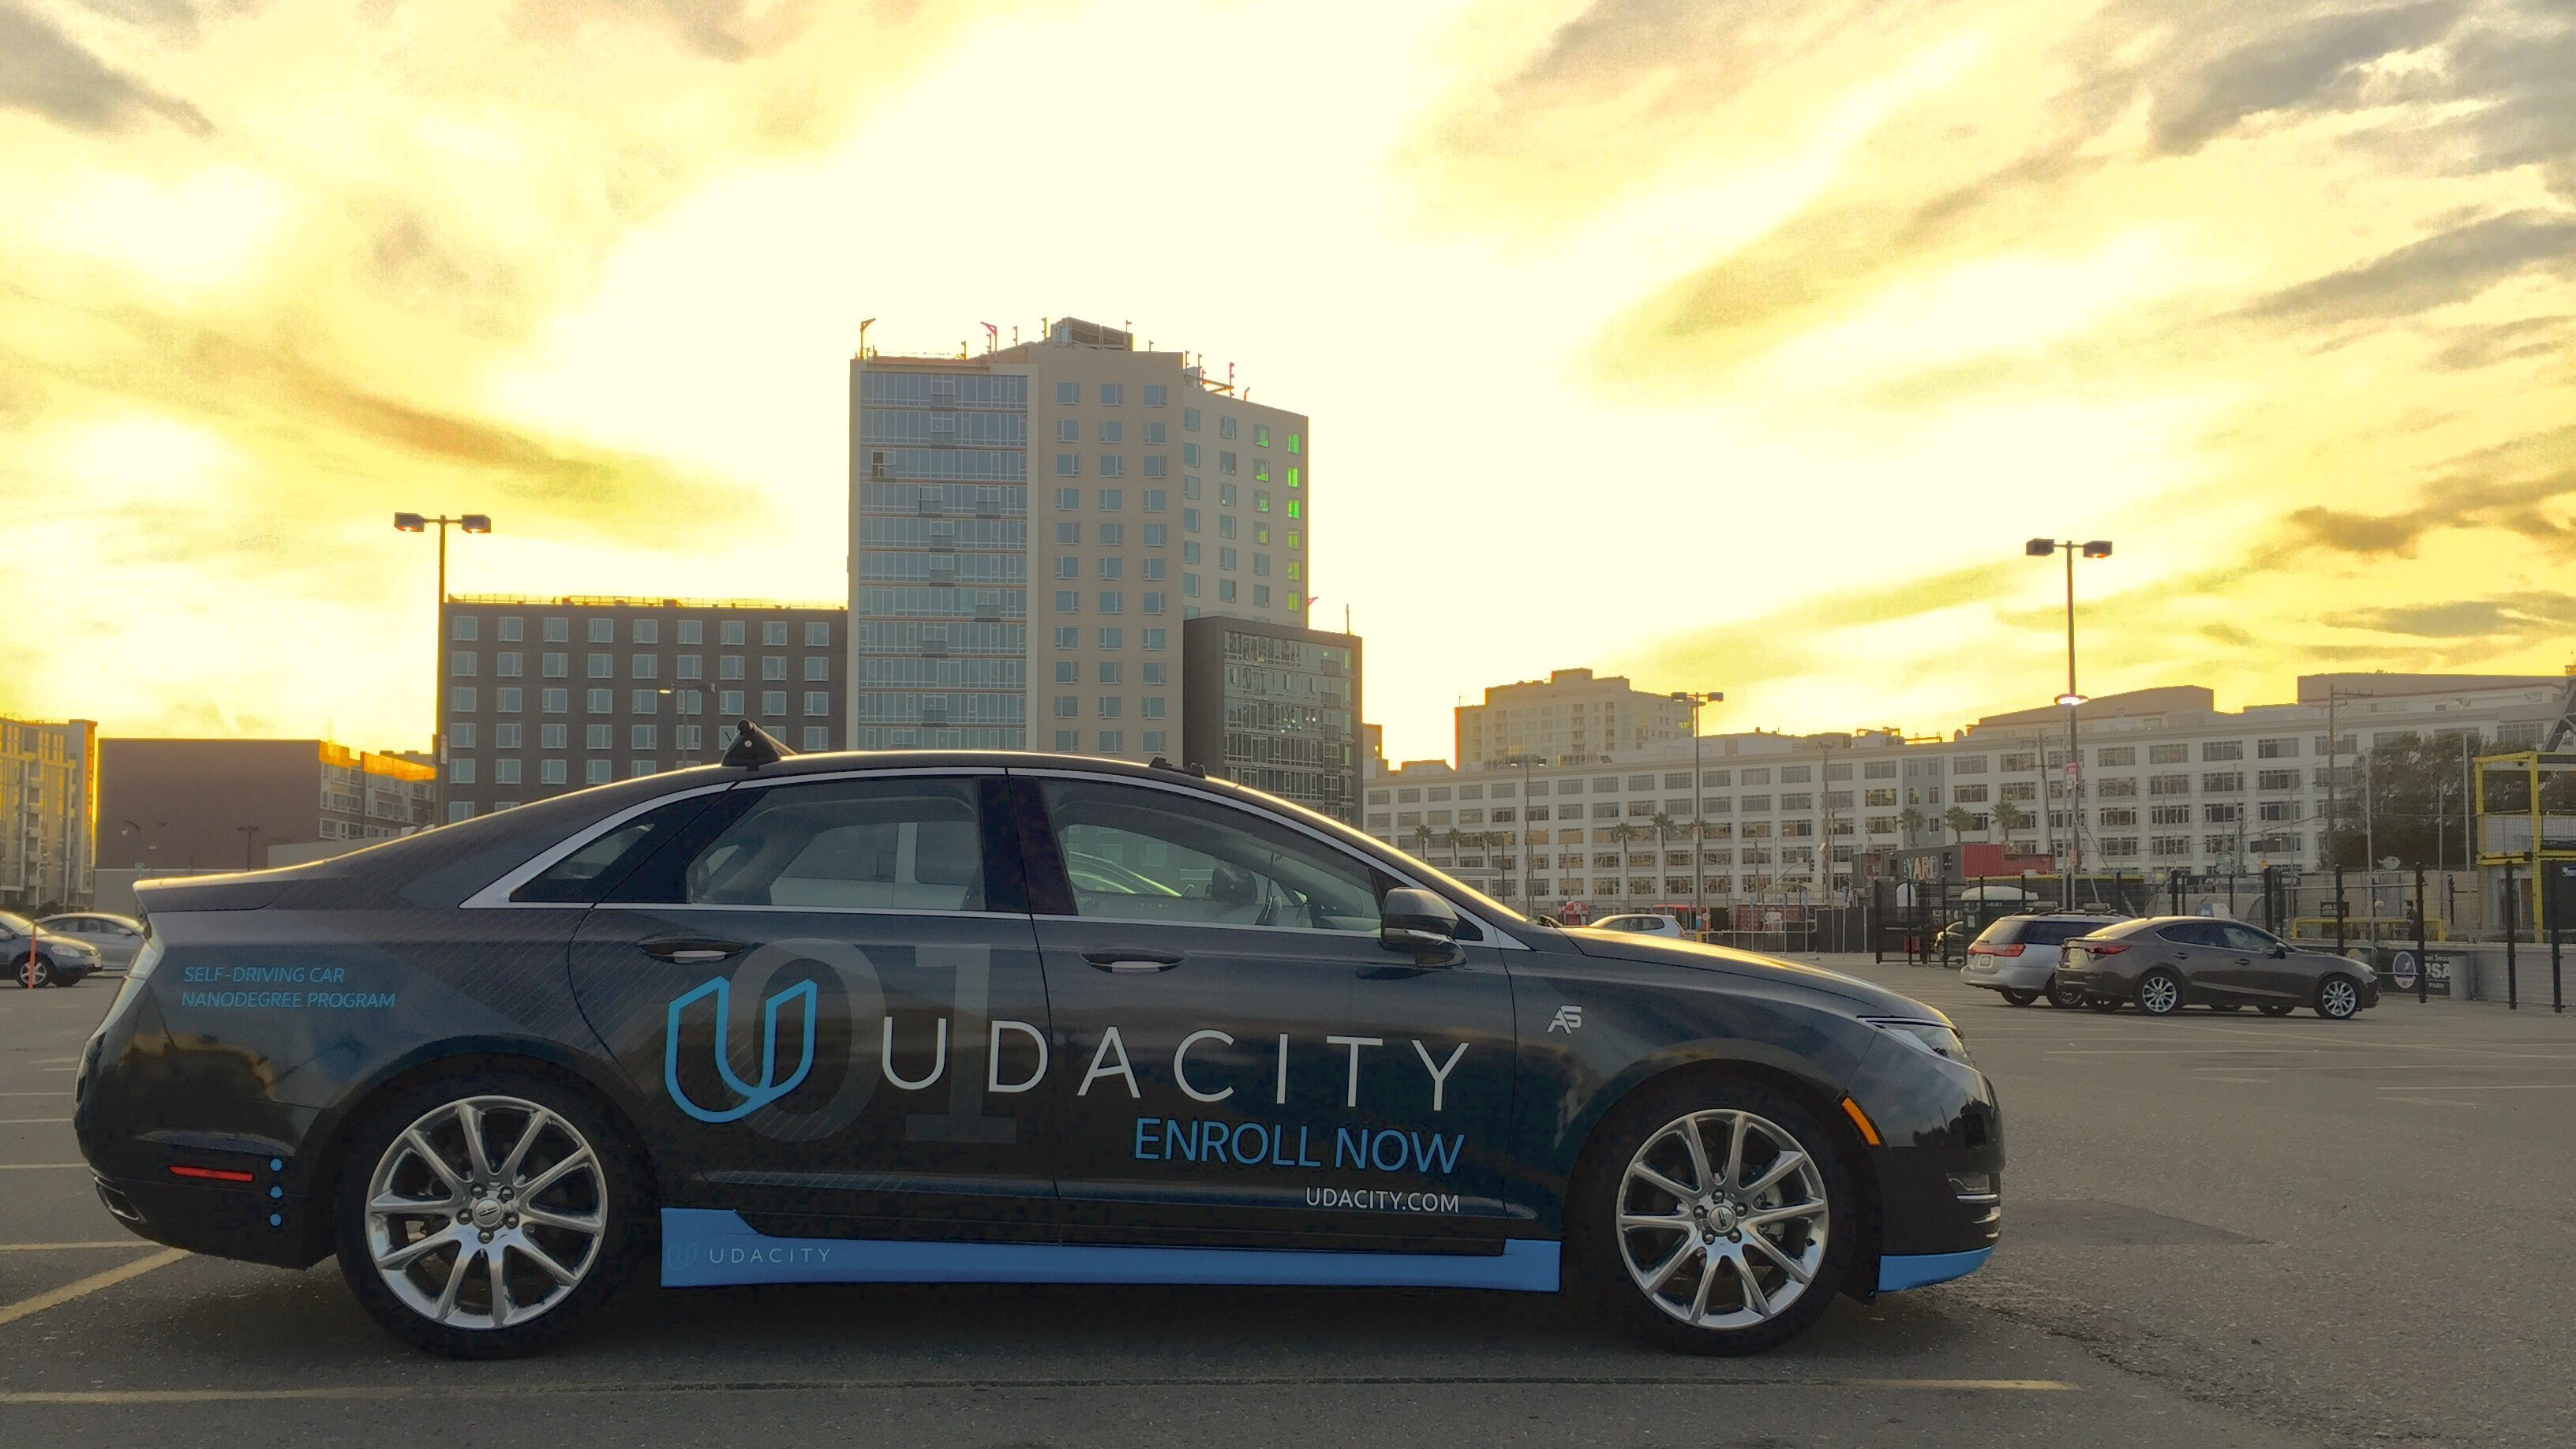 A self-driving Udacity car.